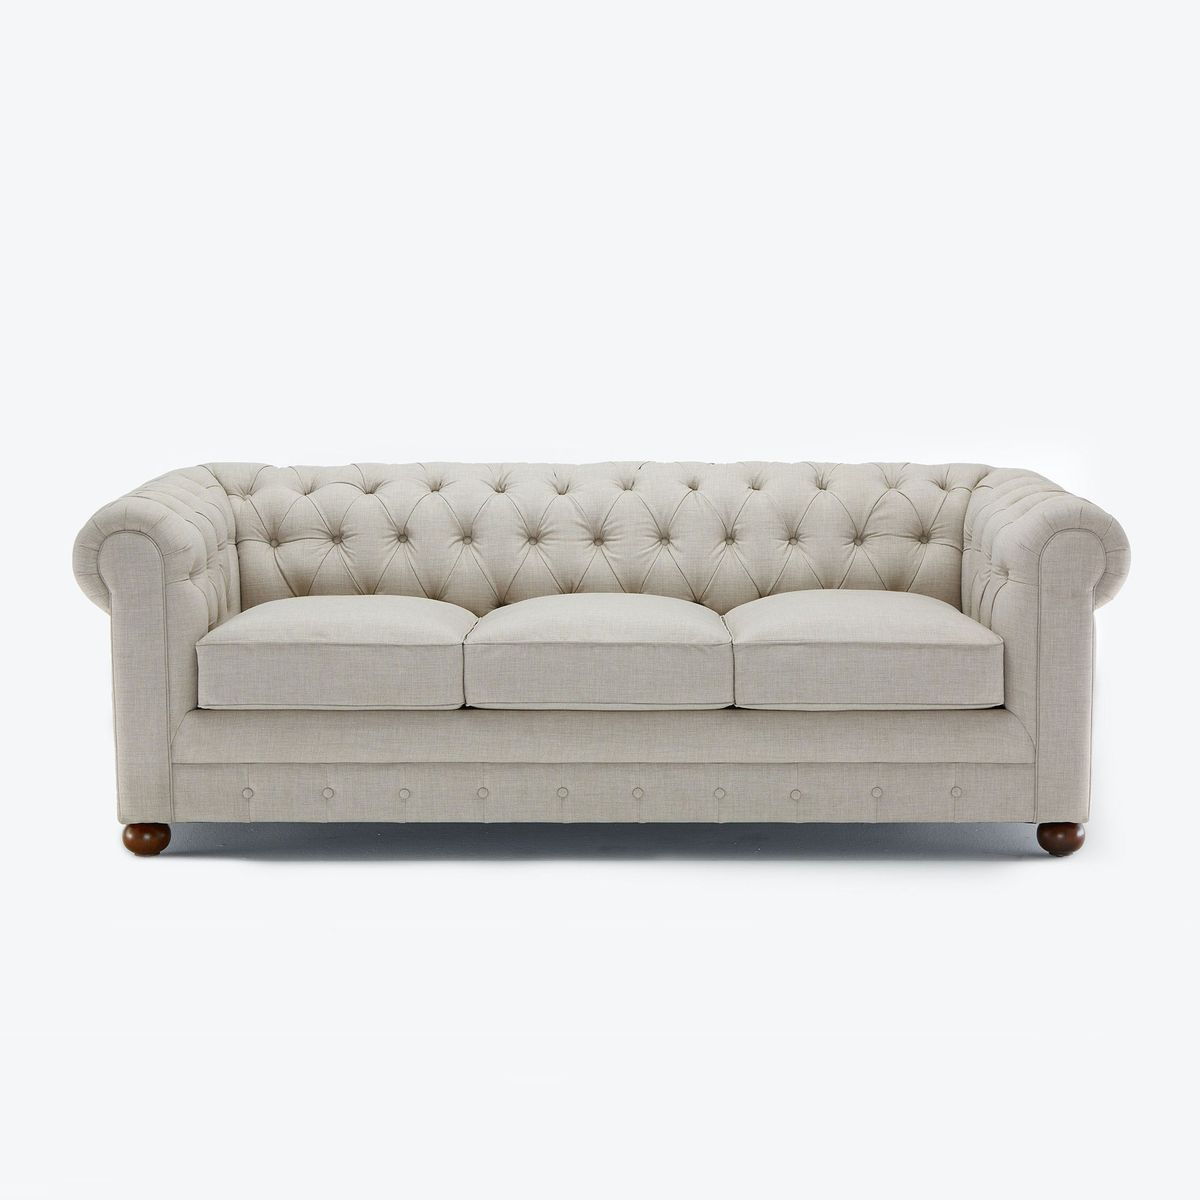 Picture of: 29 Best Sleeper Sofas Sofa Beds And Pullout Couches 2020 The Strategist New York Magazine